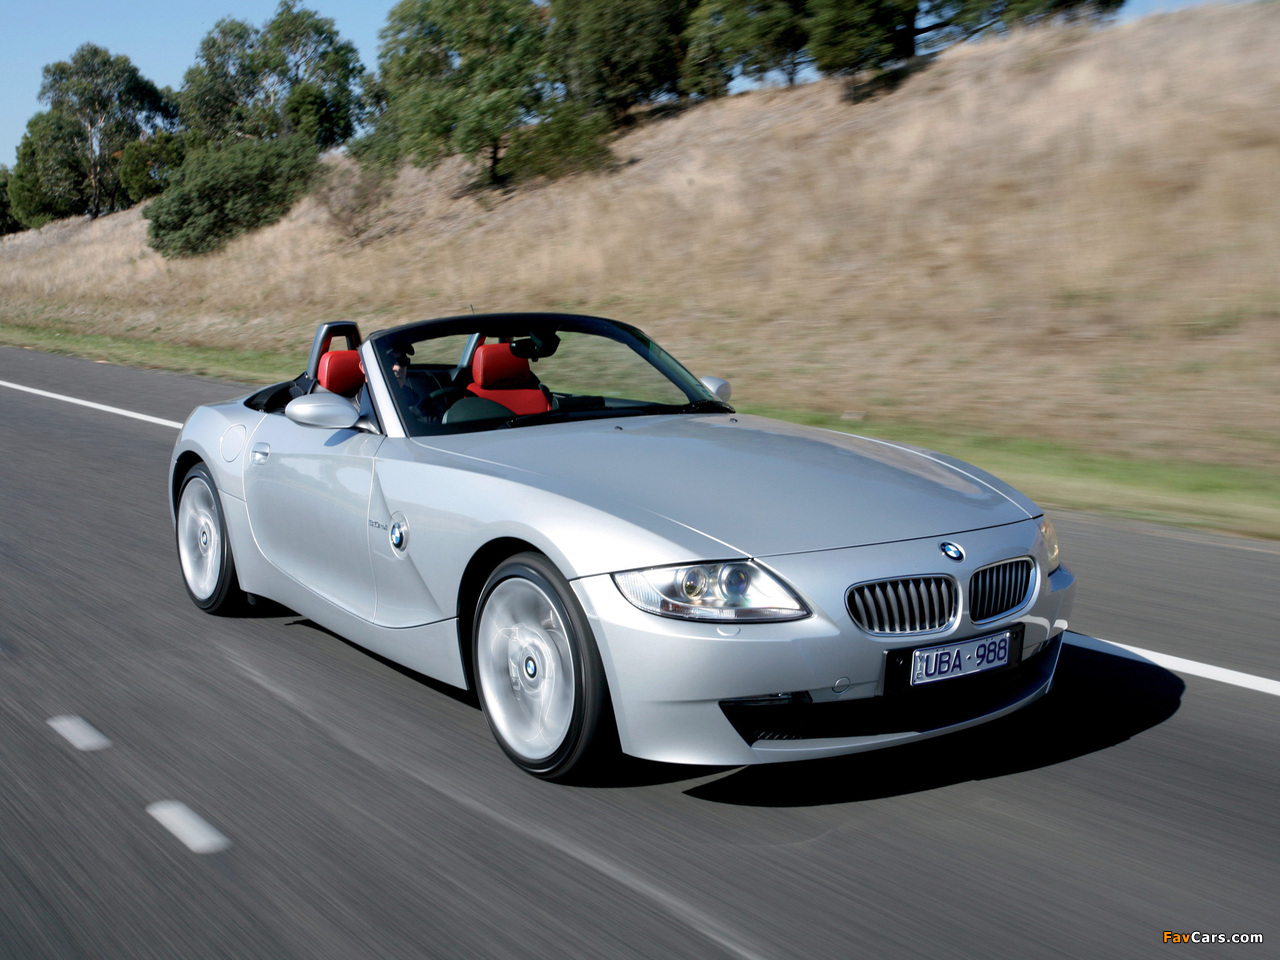 Bmw Z4 3 0si Roadster Au Spec E85 2005 09 Wallpapers 1280x960